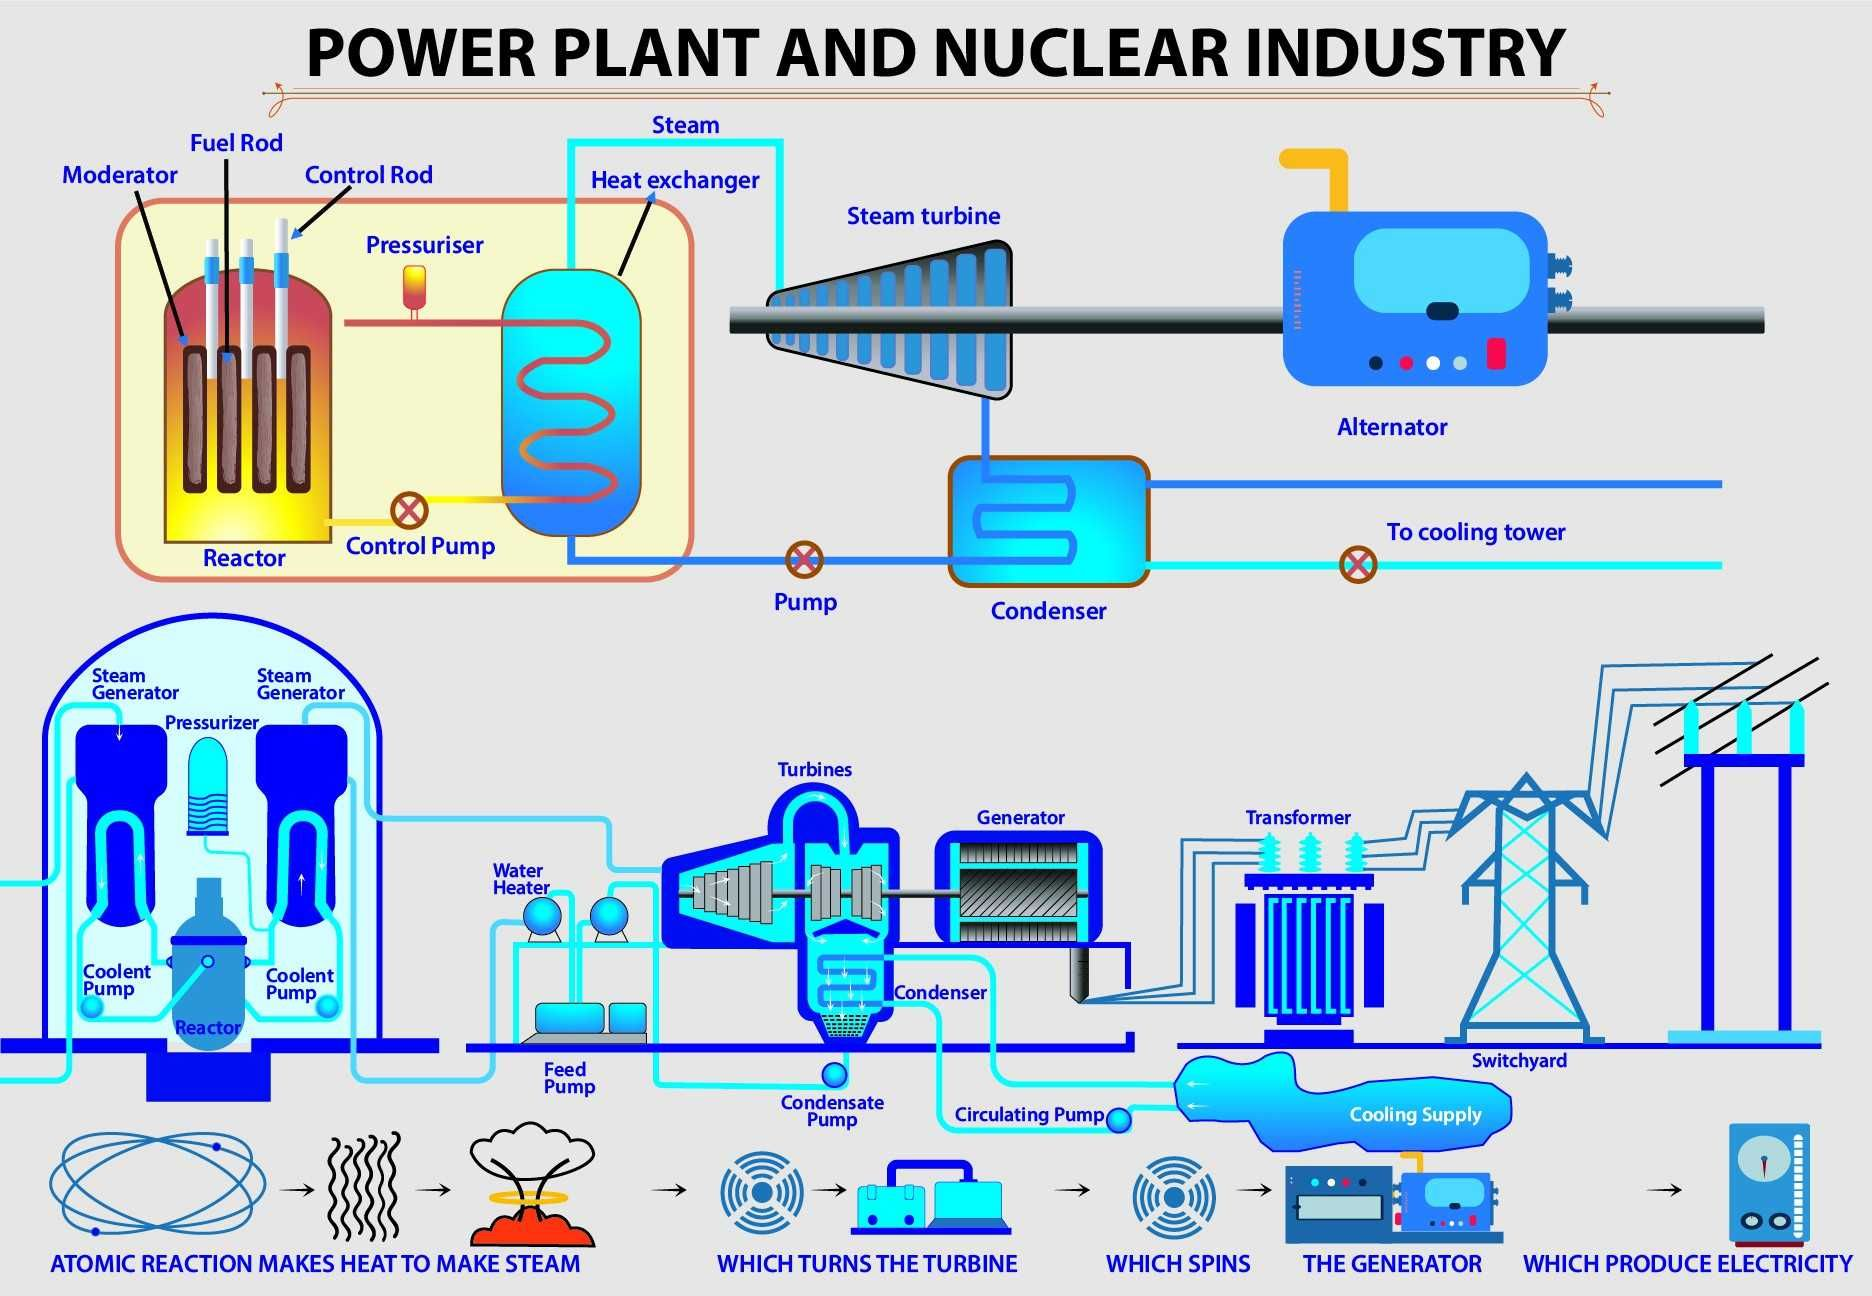 How Instrumentation Control Systems Helps Power Plant And Nuclear Industry Power Plant Nuclear Power Plant Technology Solutions [ 1296 x 1872 Pixel ]